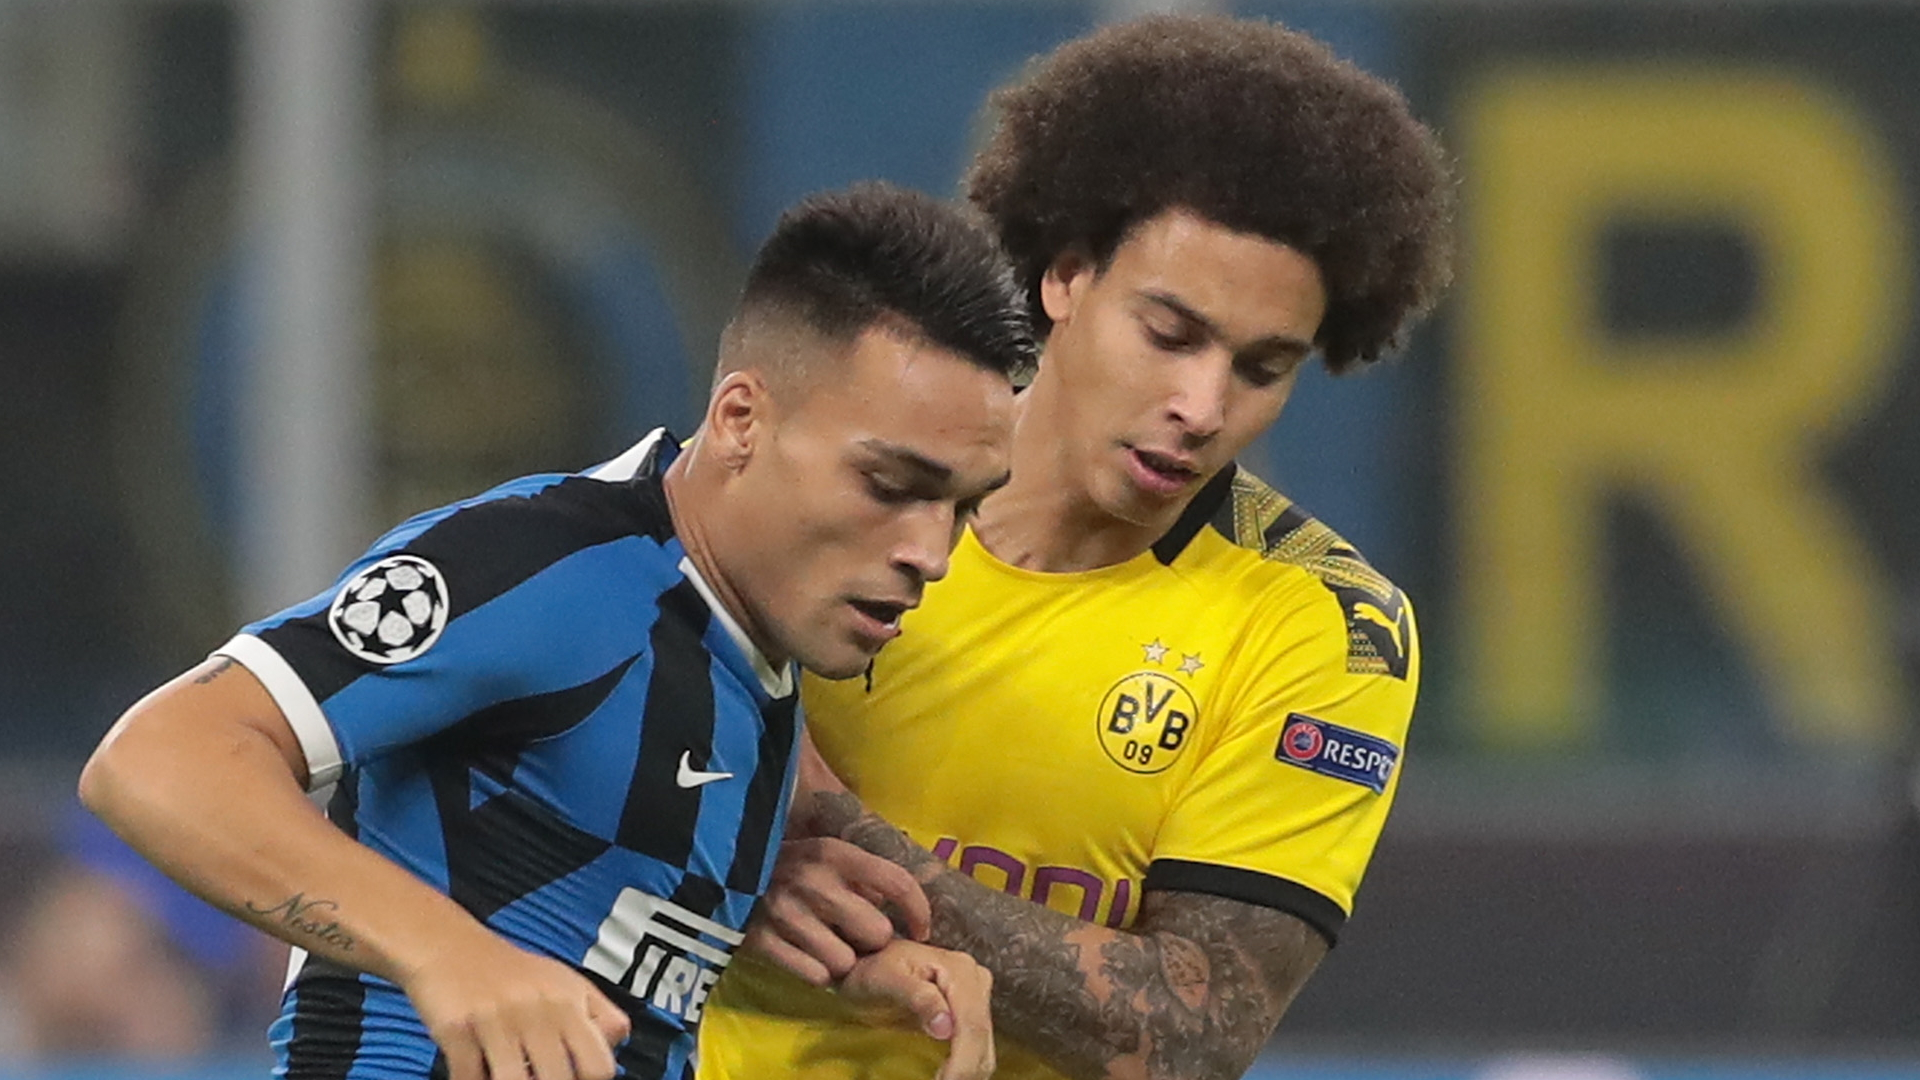 Bvb Inter Mailand Tv